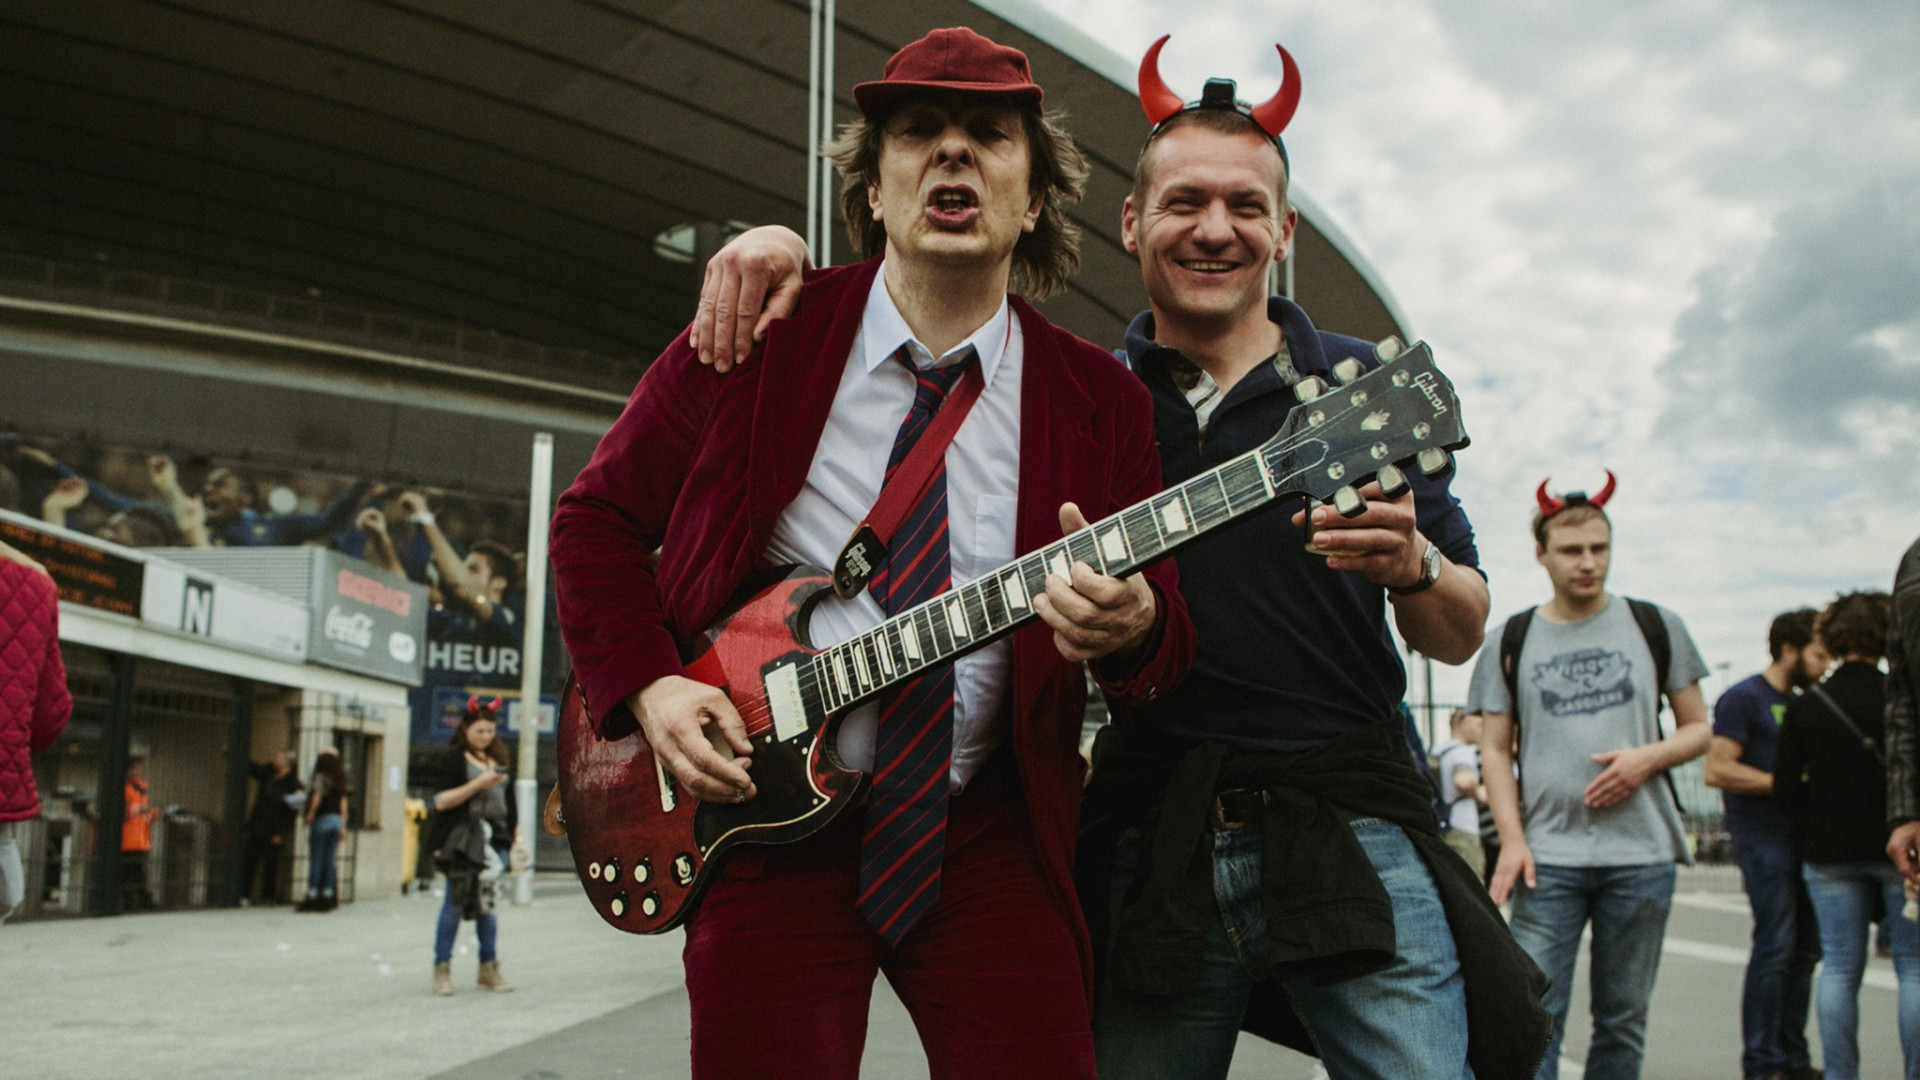 Philippe (à gauche), grand fan d'Angus Young